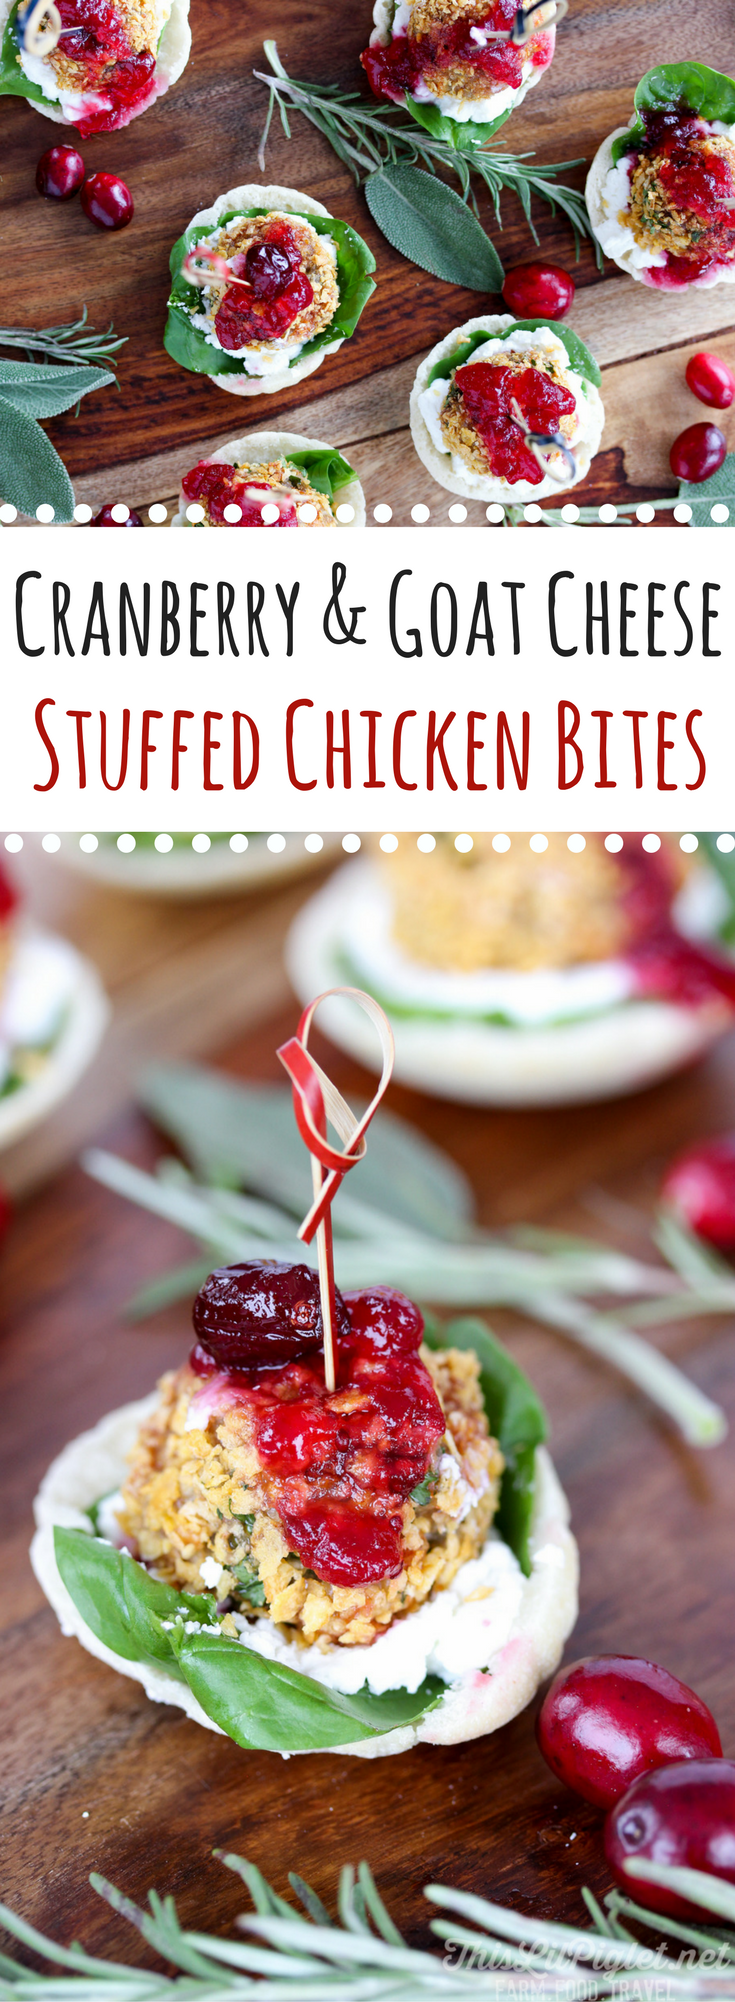 Cranberry and Goat Cheese Stuffed Chicken Bites // thislilpiglet.net